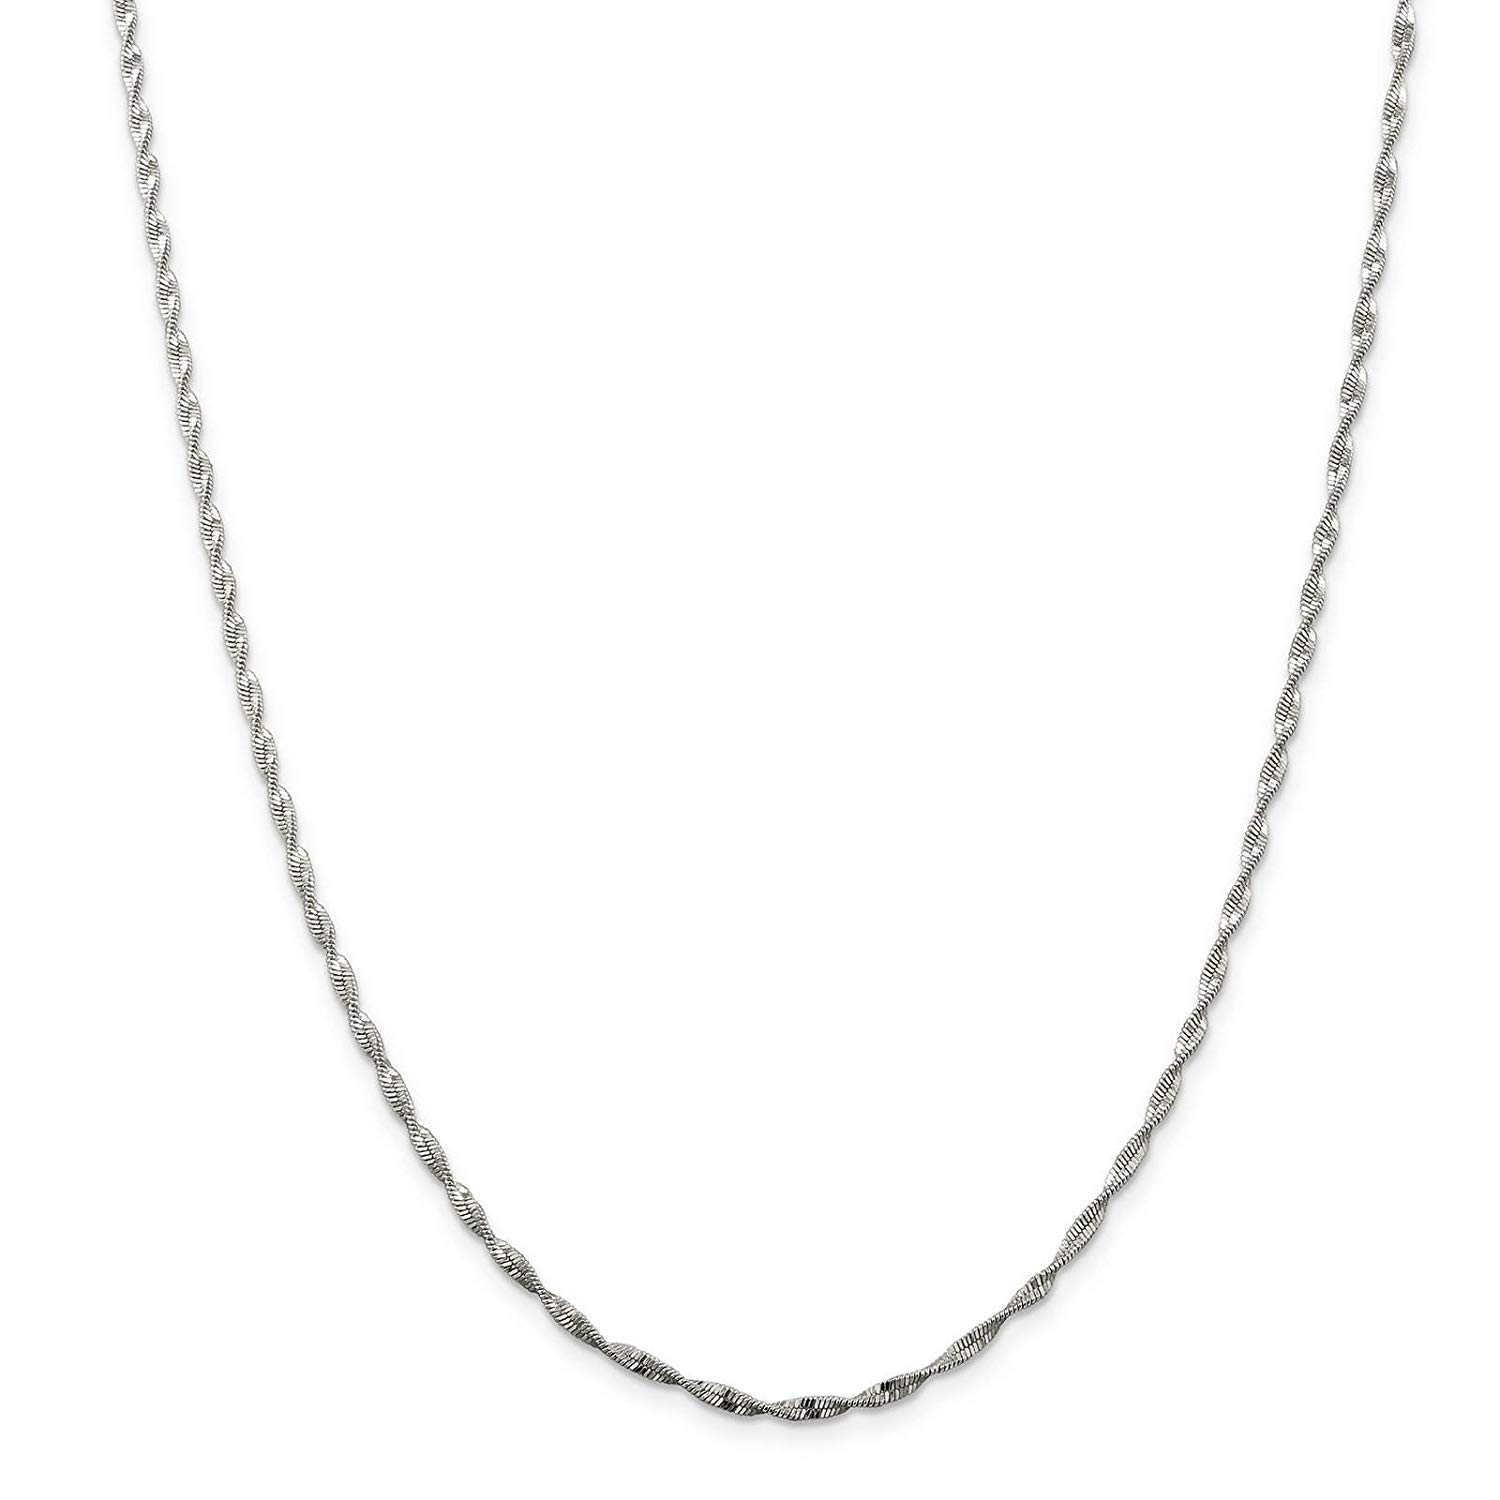 c0c6fbec0e25ca Get Quotations · 925 Sterling Silver 2mm Twisted Herringbone Chain Necklace  7